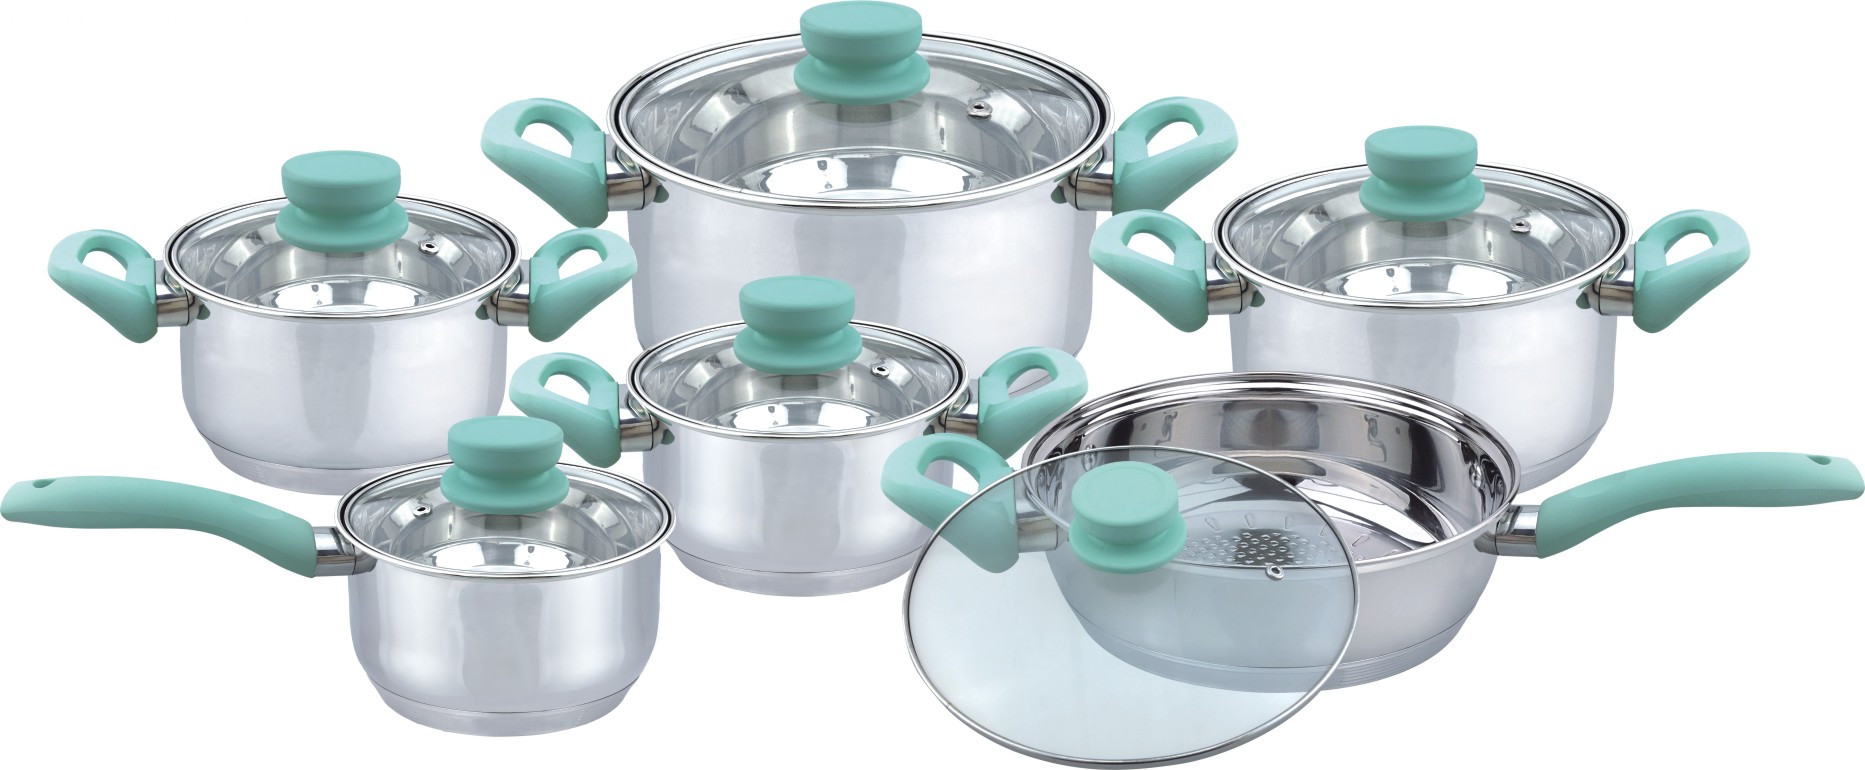 Green soft touch cookware set